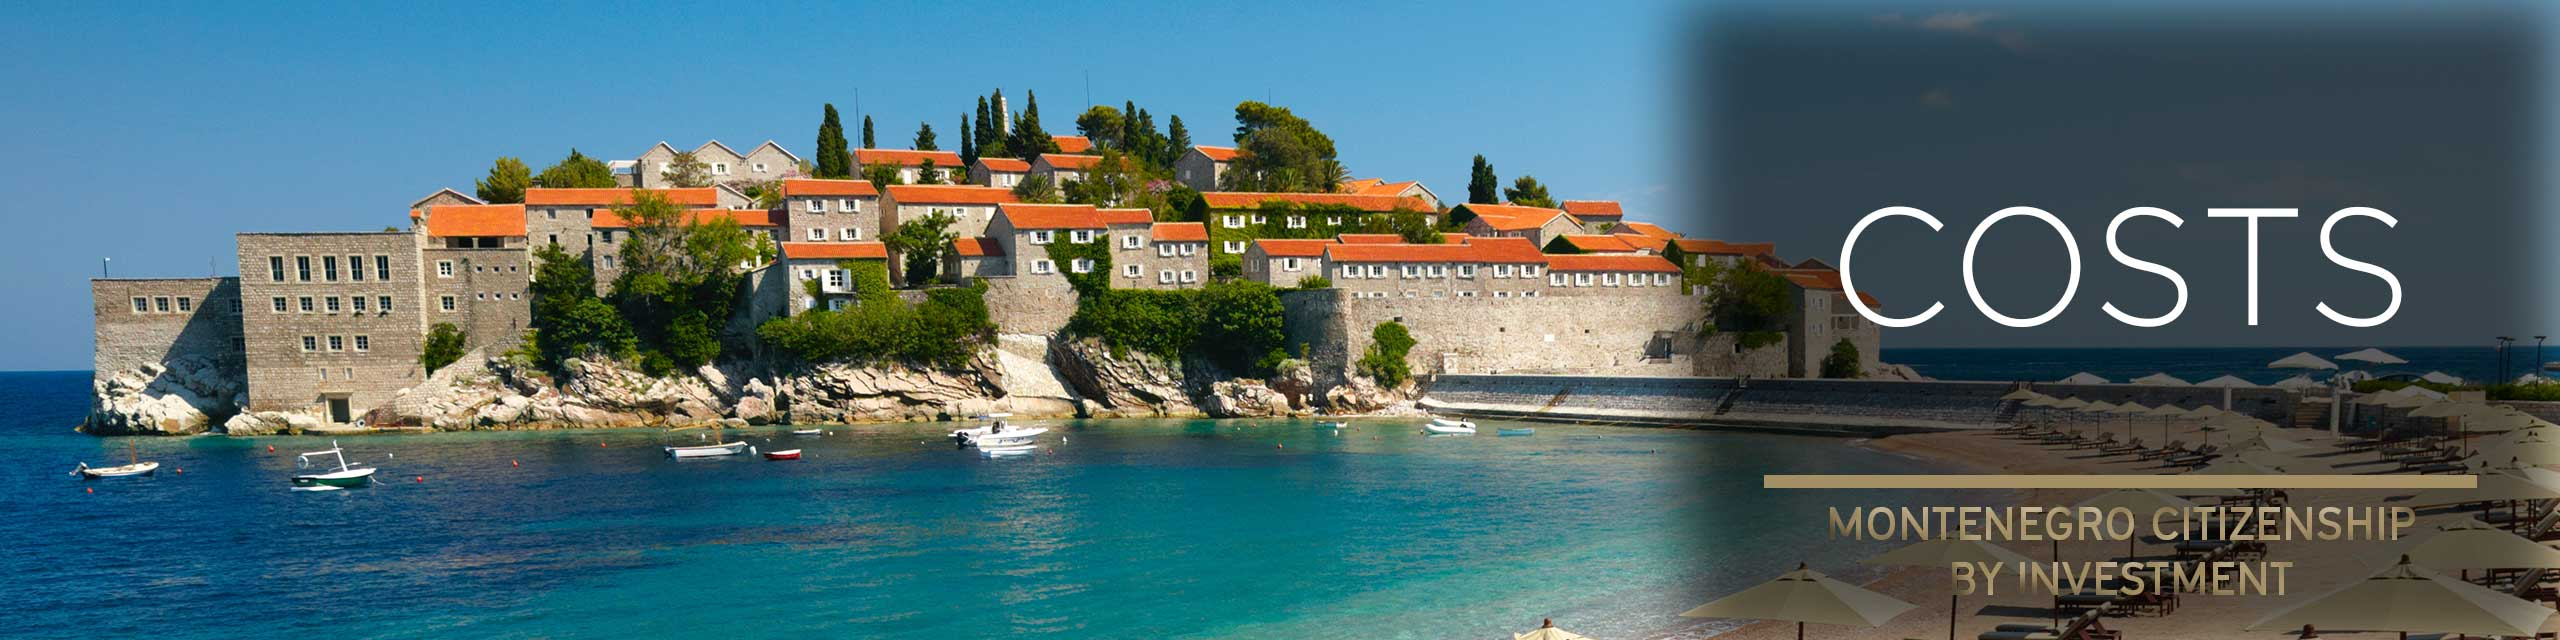 Montenegro citizenship costs